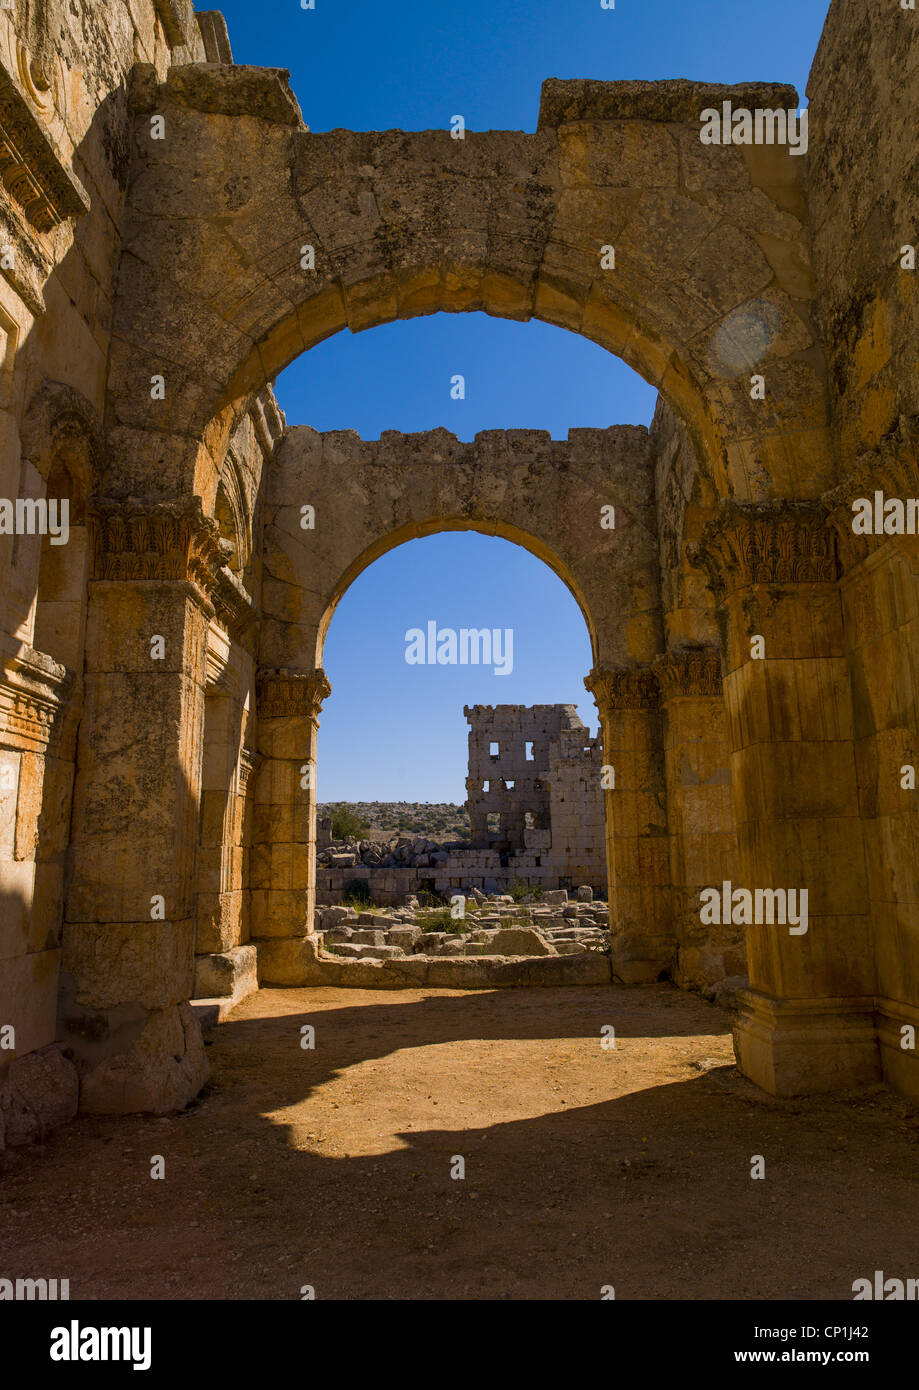 Arches of Qalaat Samaan In The Church of Saint Simeon , Syria - Stock Image